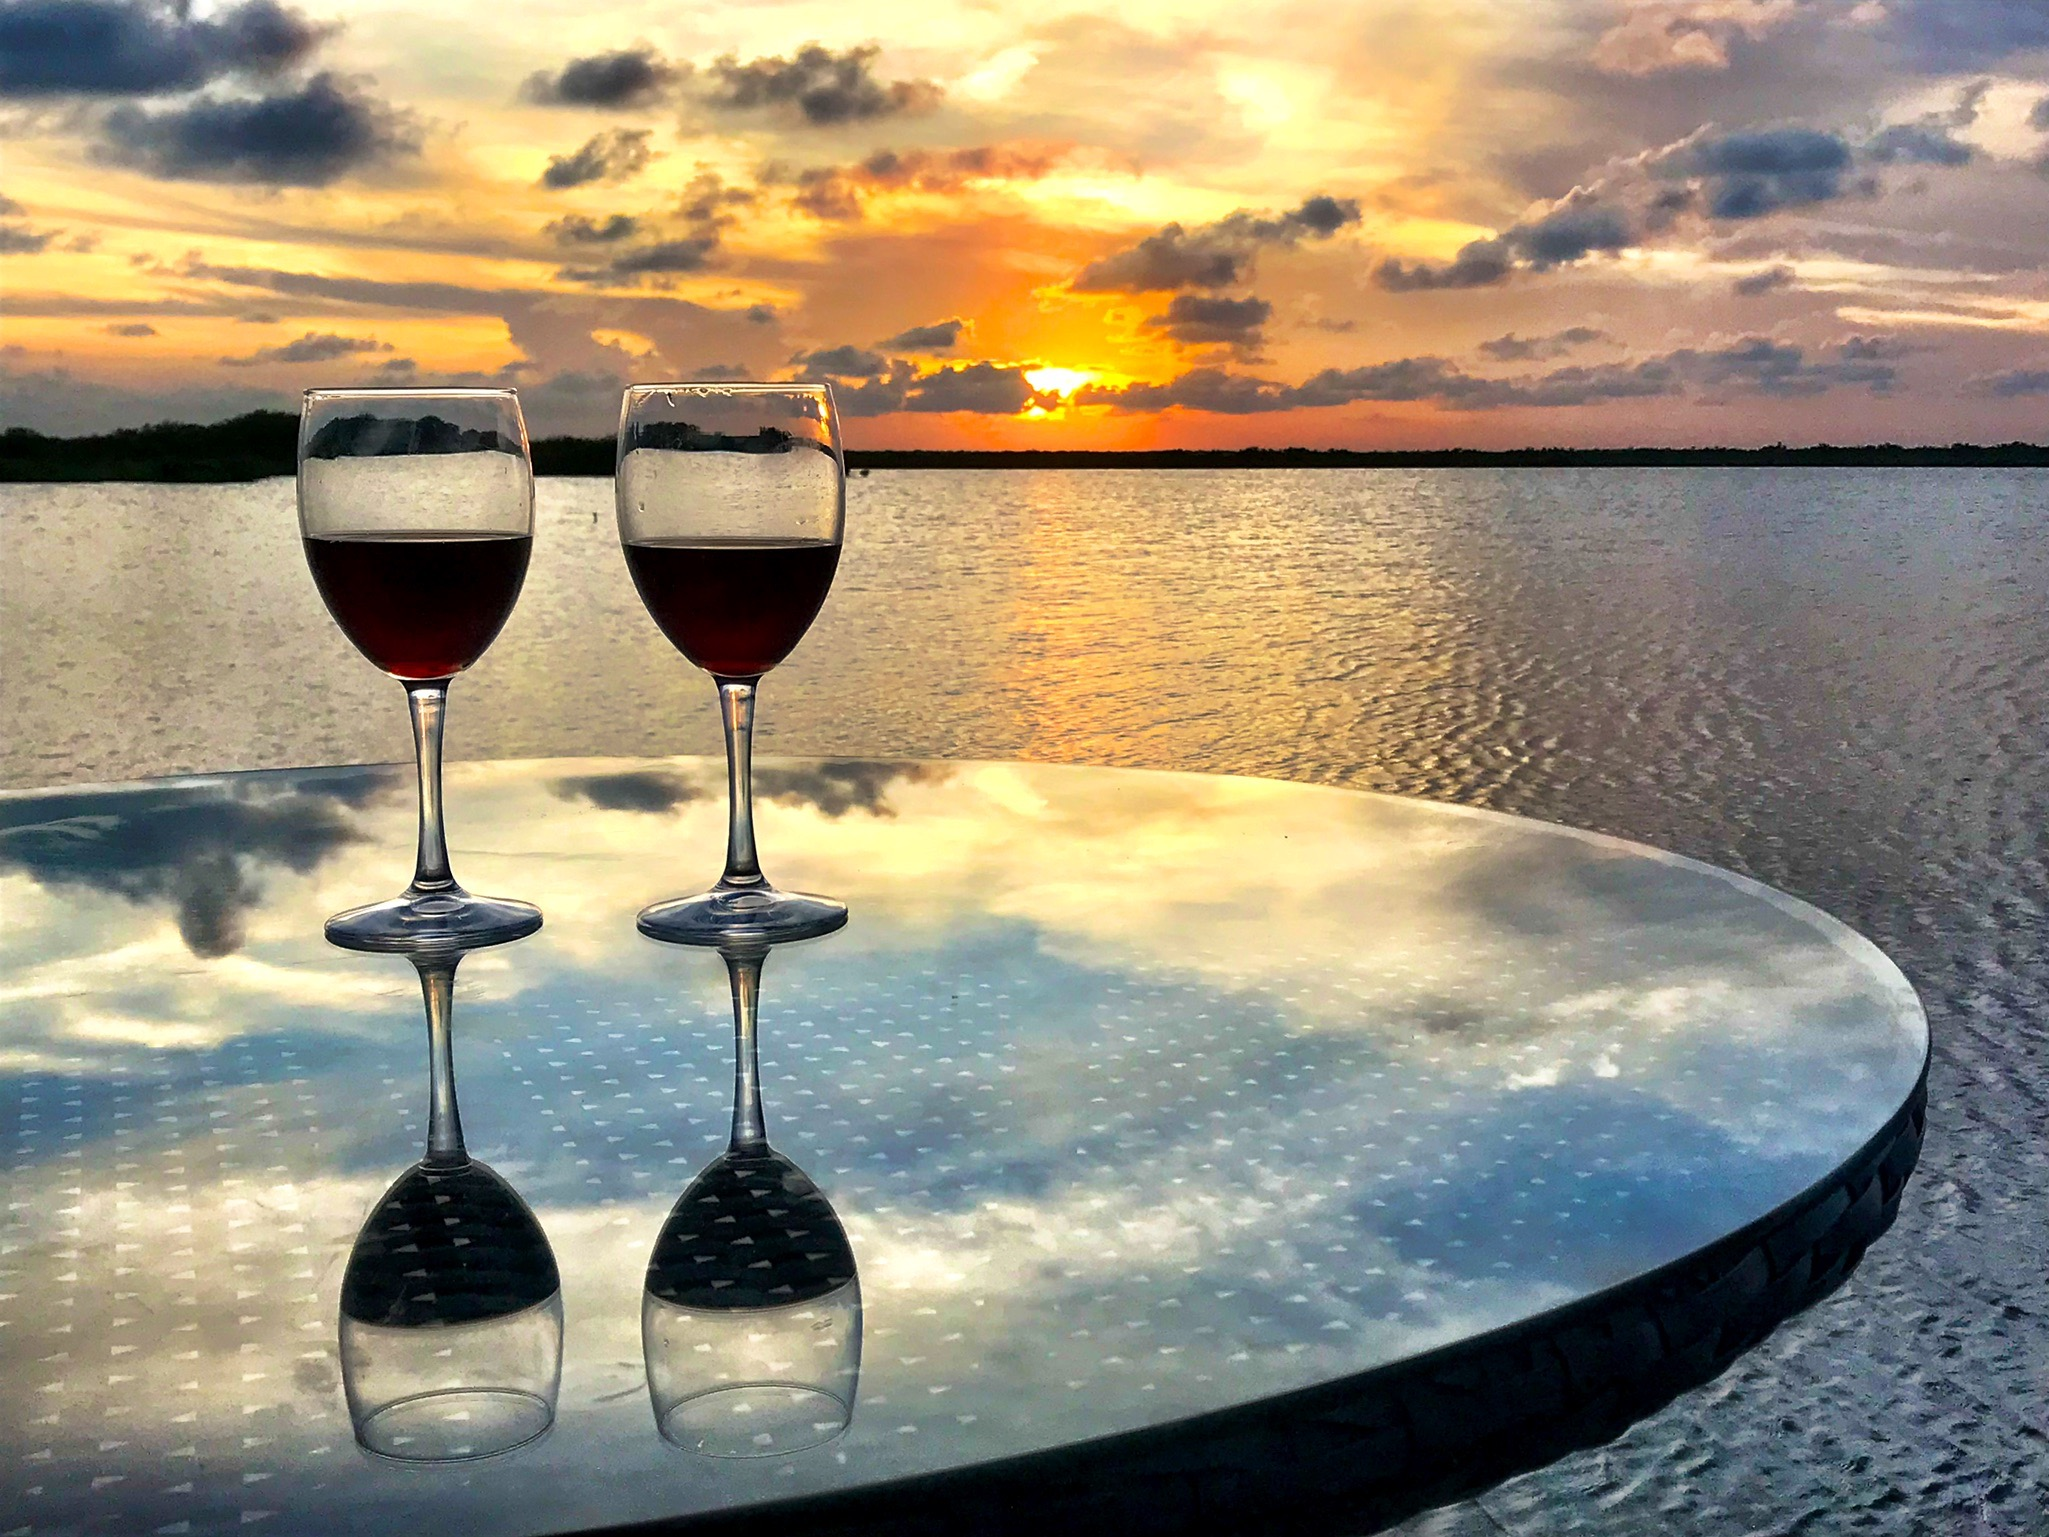 Our Ambergris Caye Restaurant Guide A Side Of Sunsets